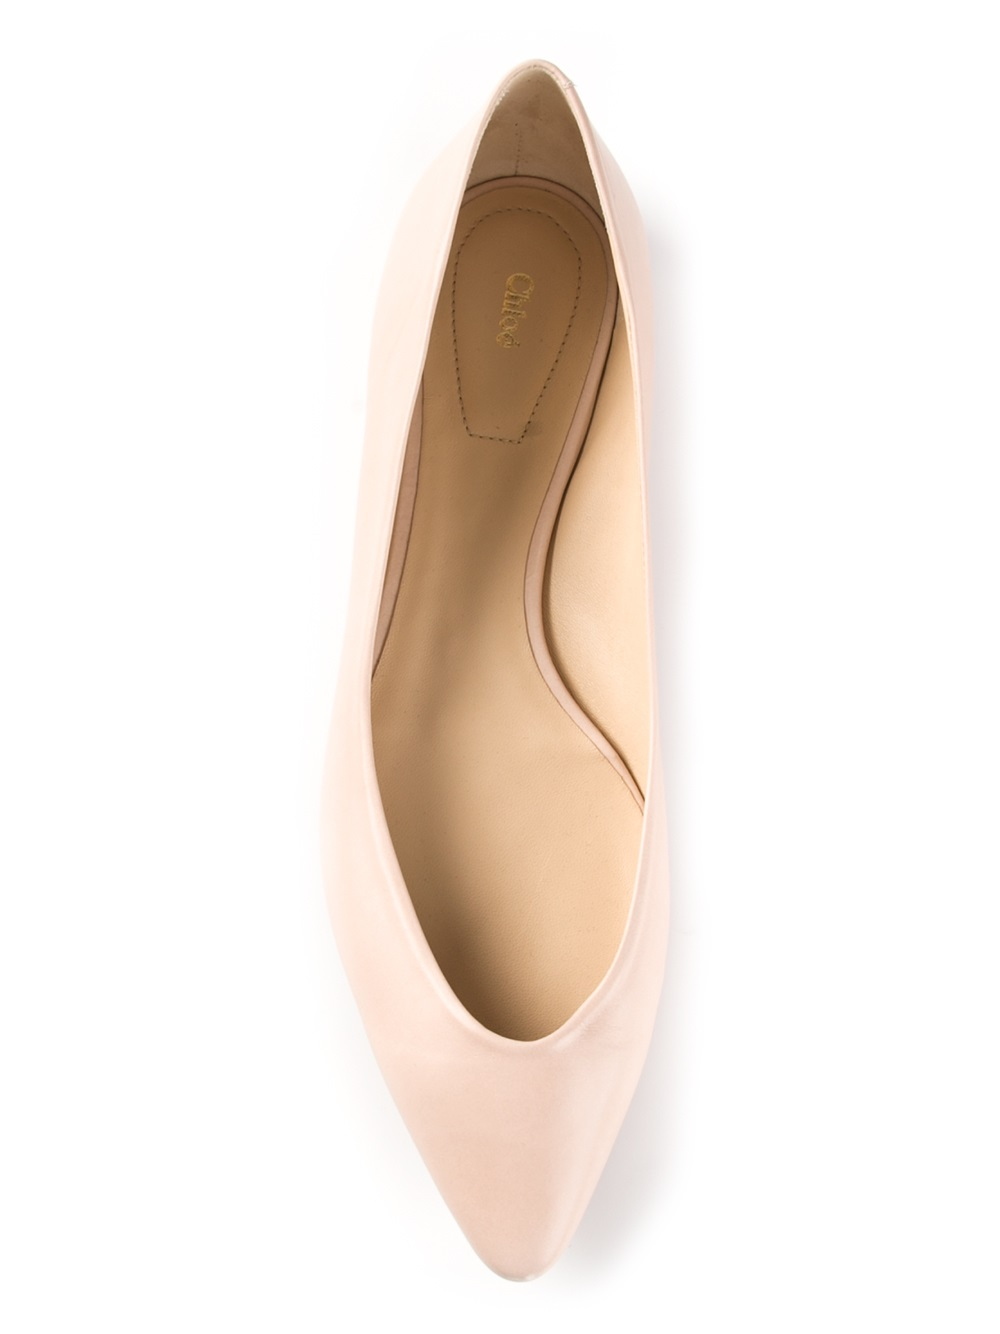 CHLOÉ Pointed toe flat